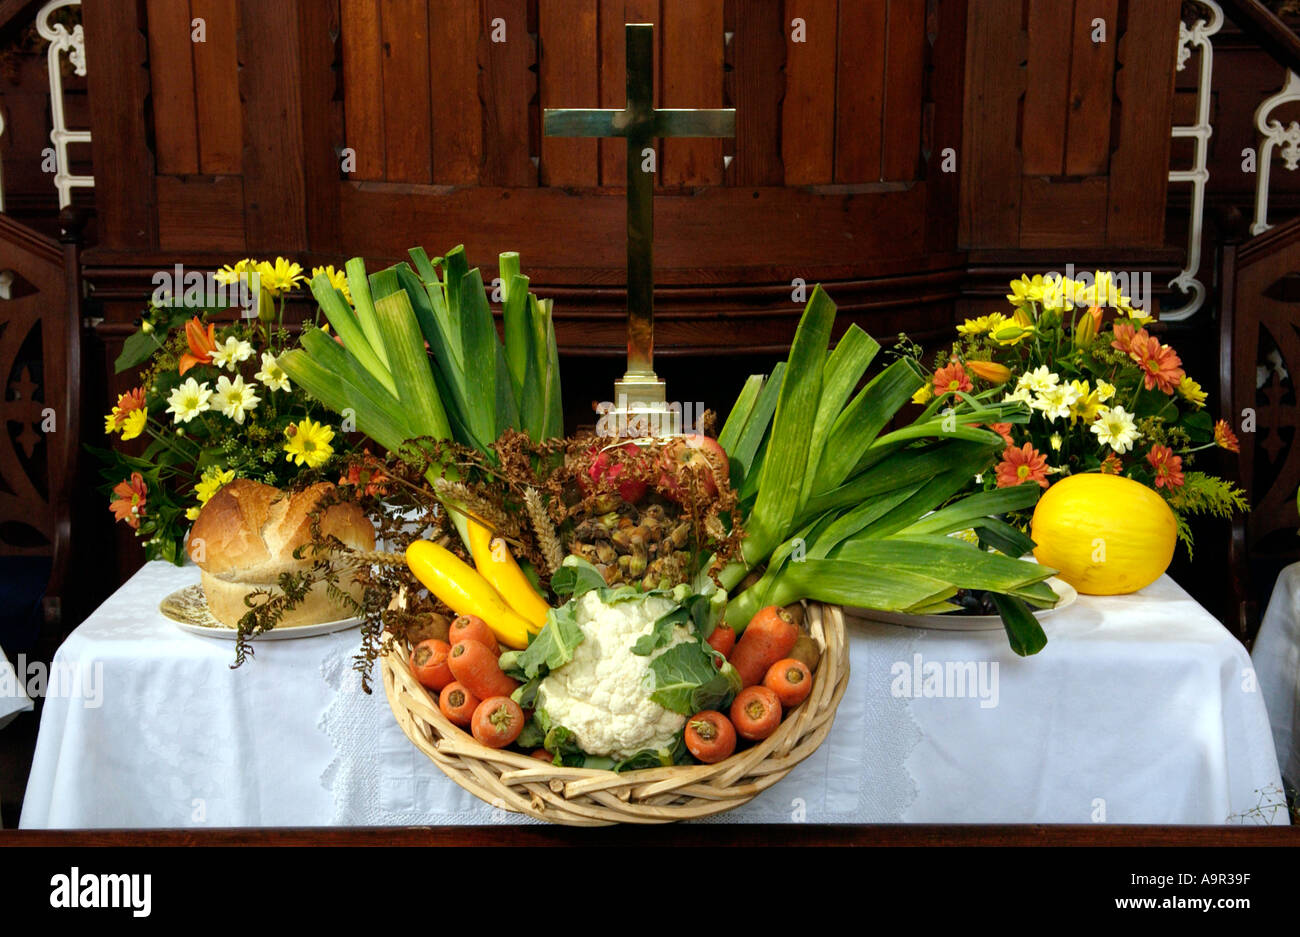 Harvest Festival Display Church High Resolution Stock Photography And Images Alamy